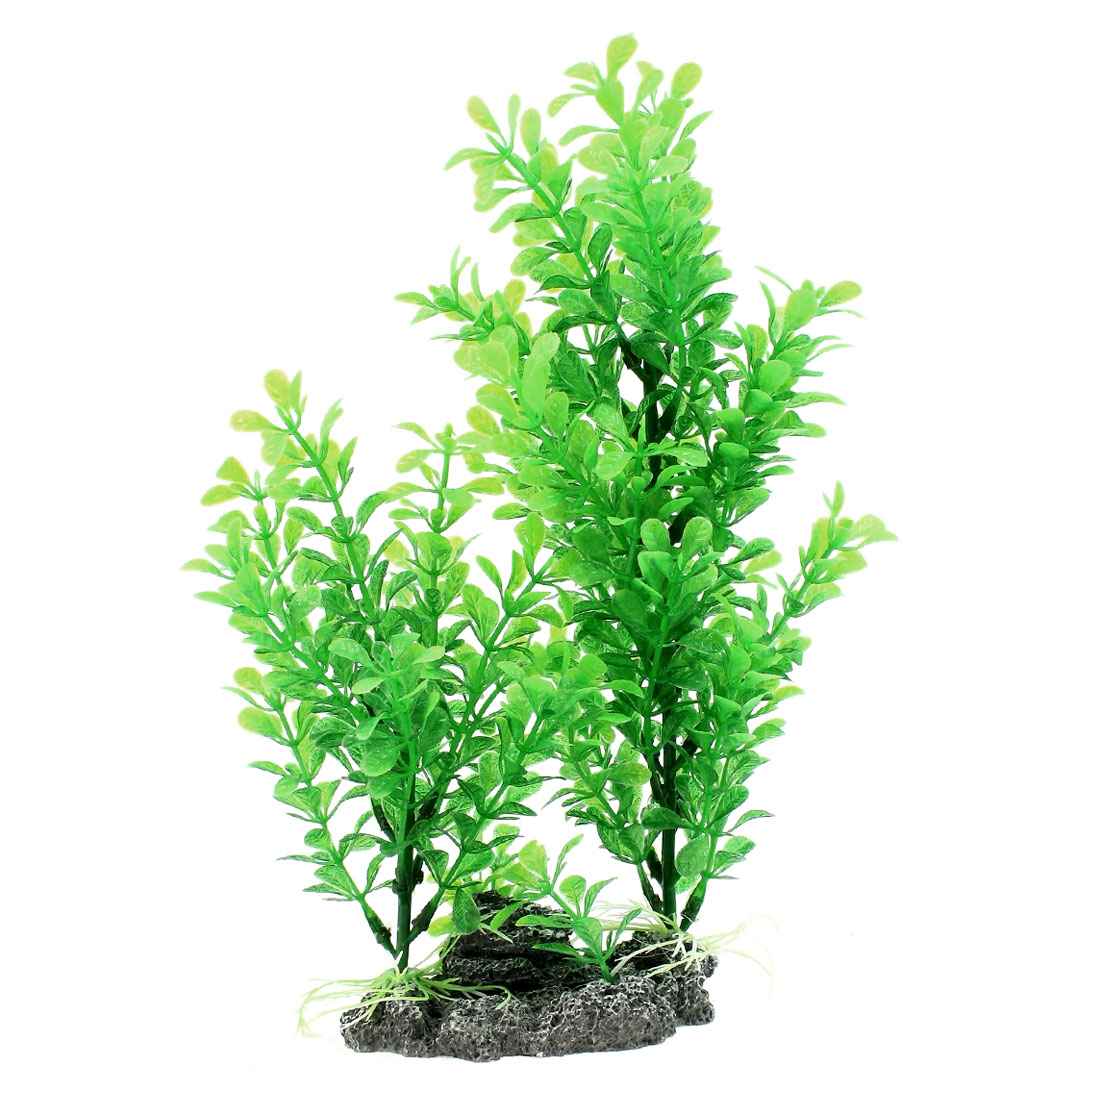 31cm Height Aquascaping Emulational Underwater Plant Adornment w Ceramic Base